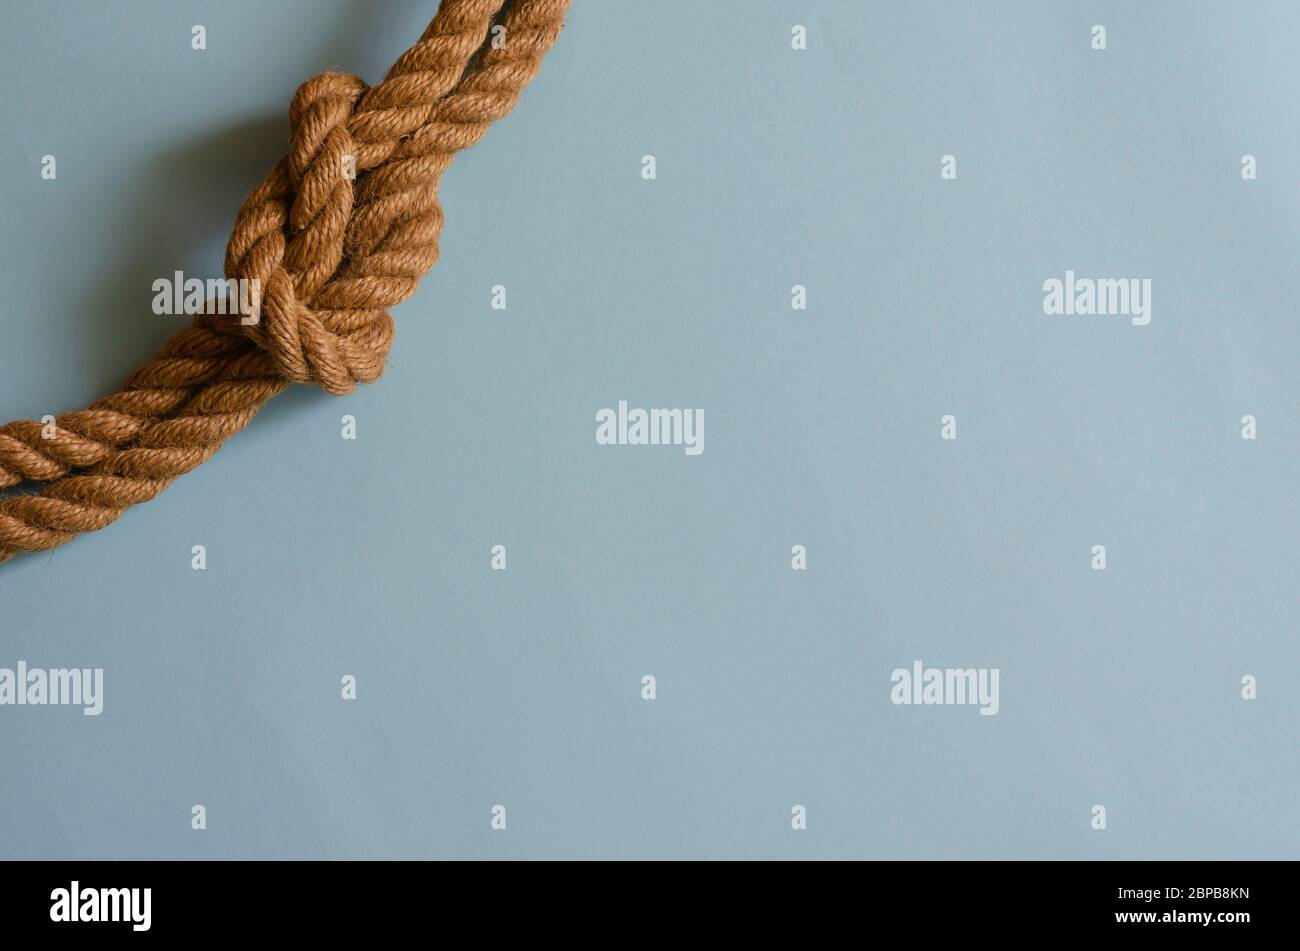 Hemp Rope With A Nautical Knot On A Light Blue Background Knotted Natural Rope Multitask Background For Design Tasks Place For Text Stock Photo Alamy